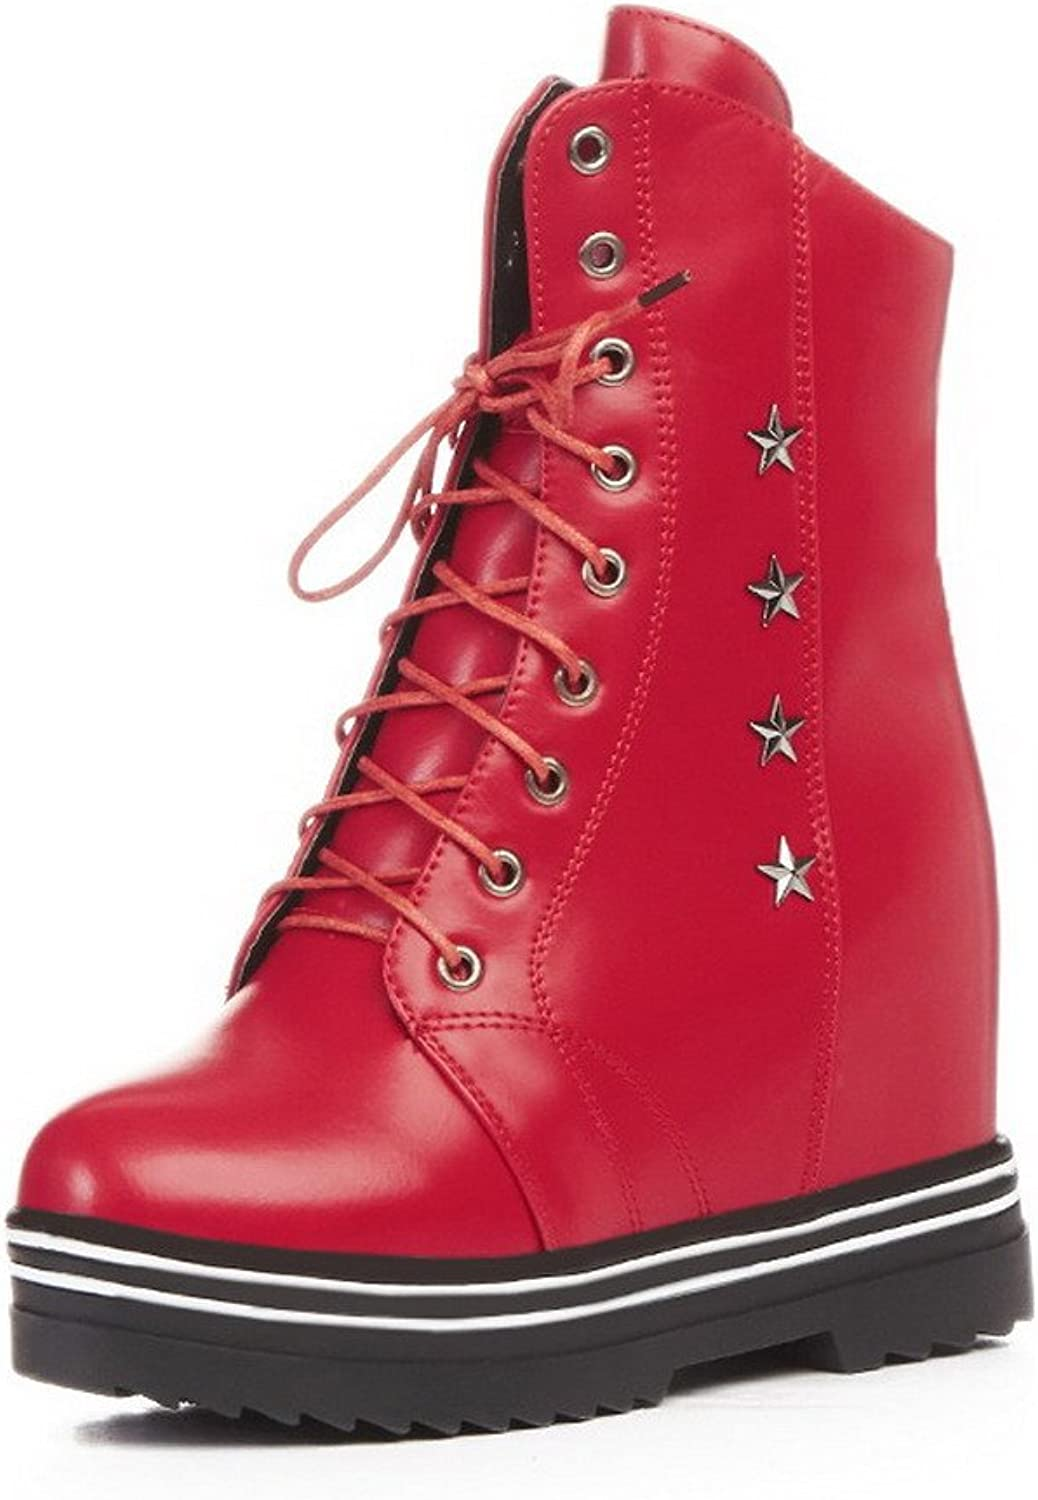 WeiPoot Women's High-Heels Soft Material Low-top Solid Lace-up Boots